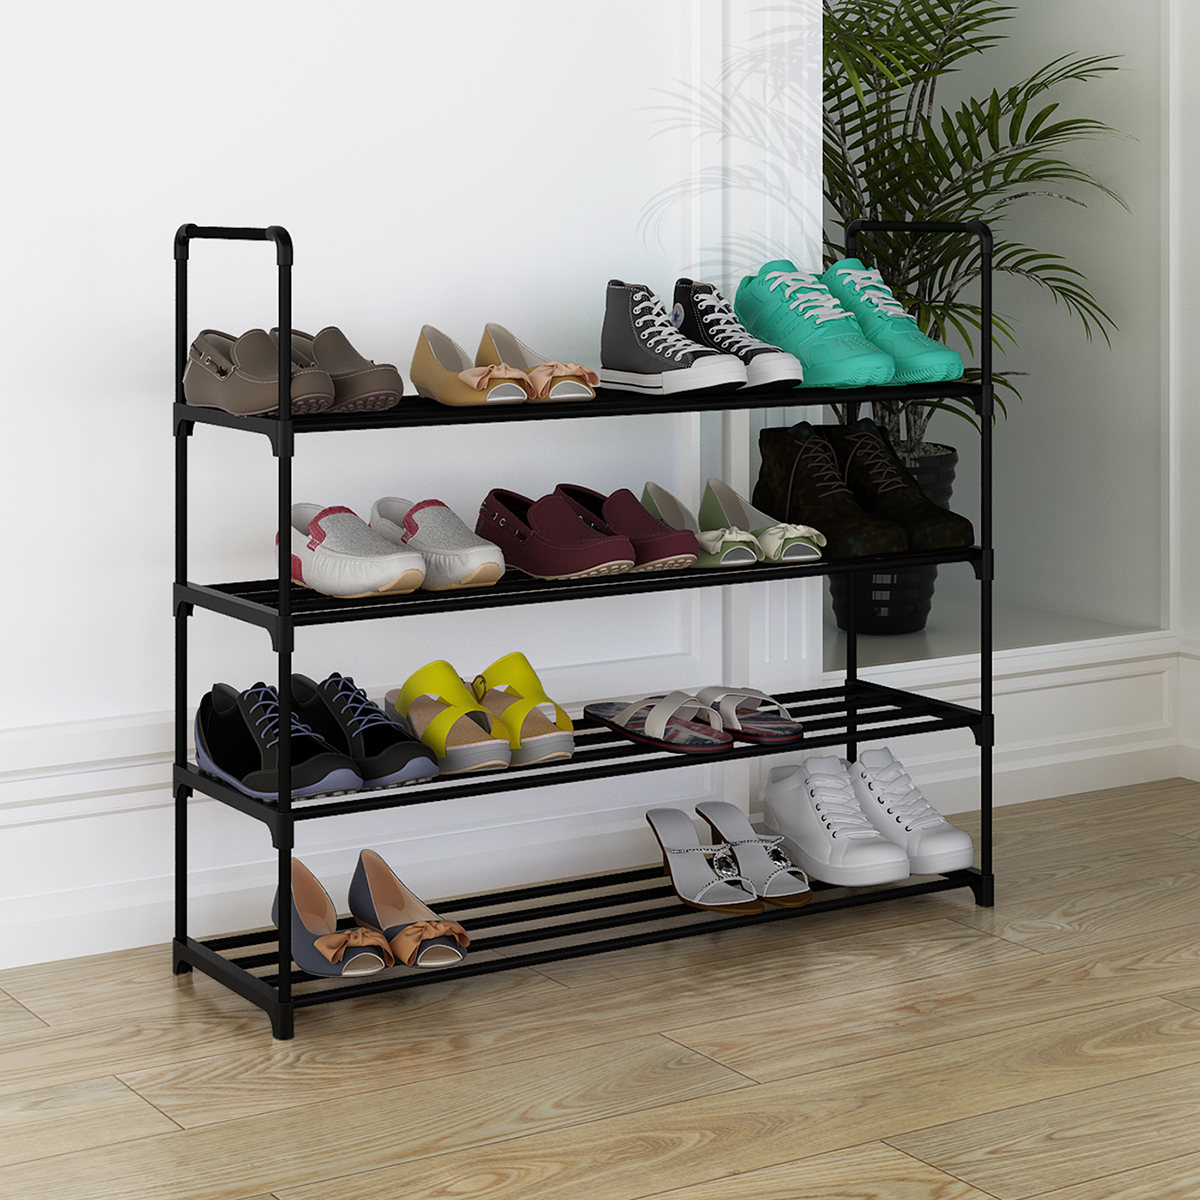 Astonishing Details About 4 Tier Shoe Rack For 20 Pair Wall Bench Shelf Closet Organizer Storage Box Stand Pabps2019 Chair Design Images Pabps2019Com